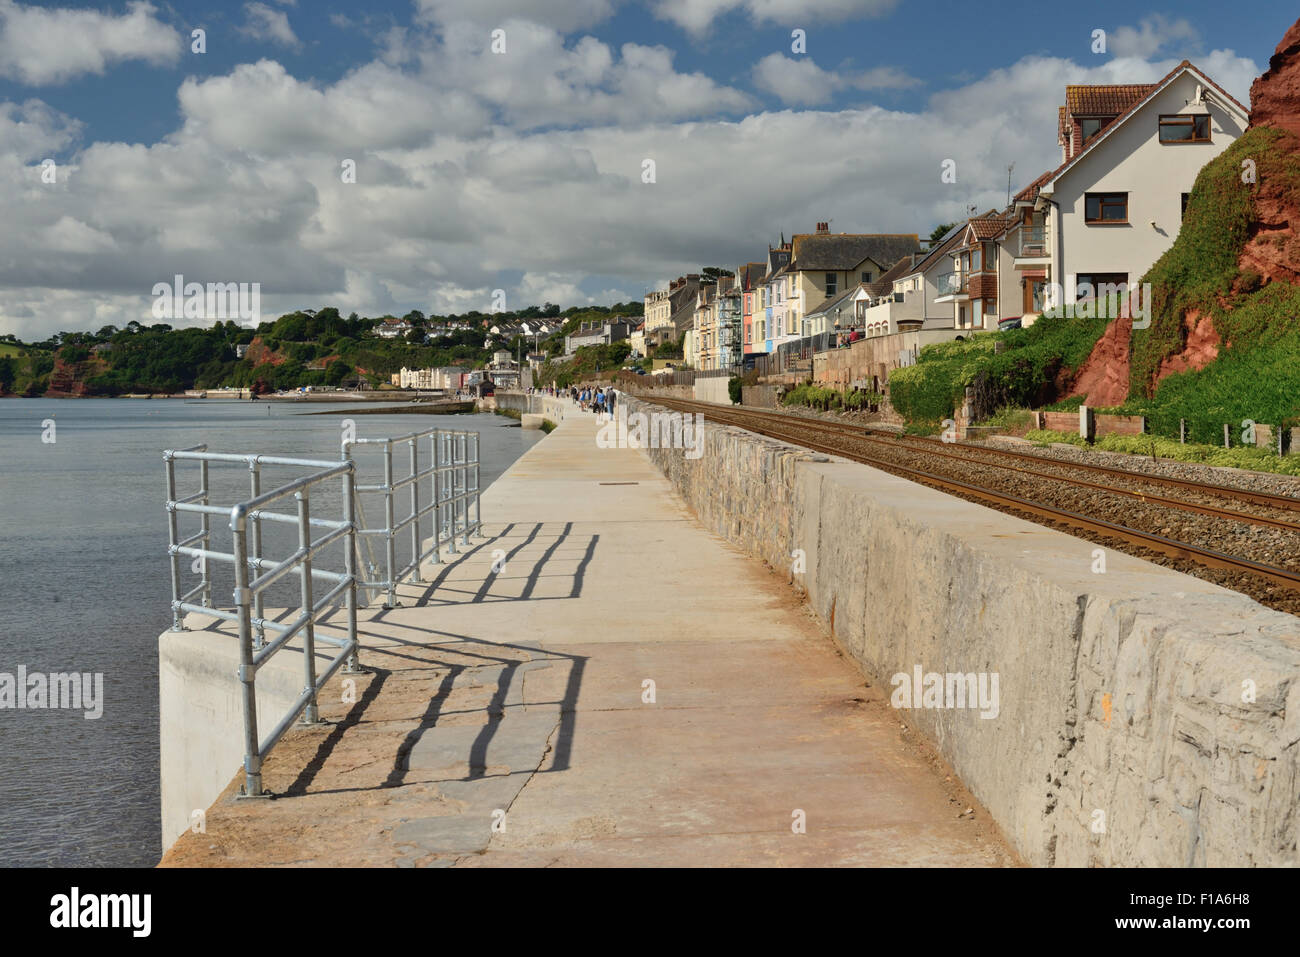 Rebuilt sea wall, following severe storm damage in 2014. - Stock Image